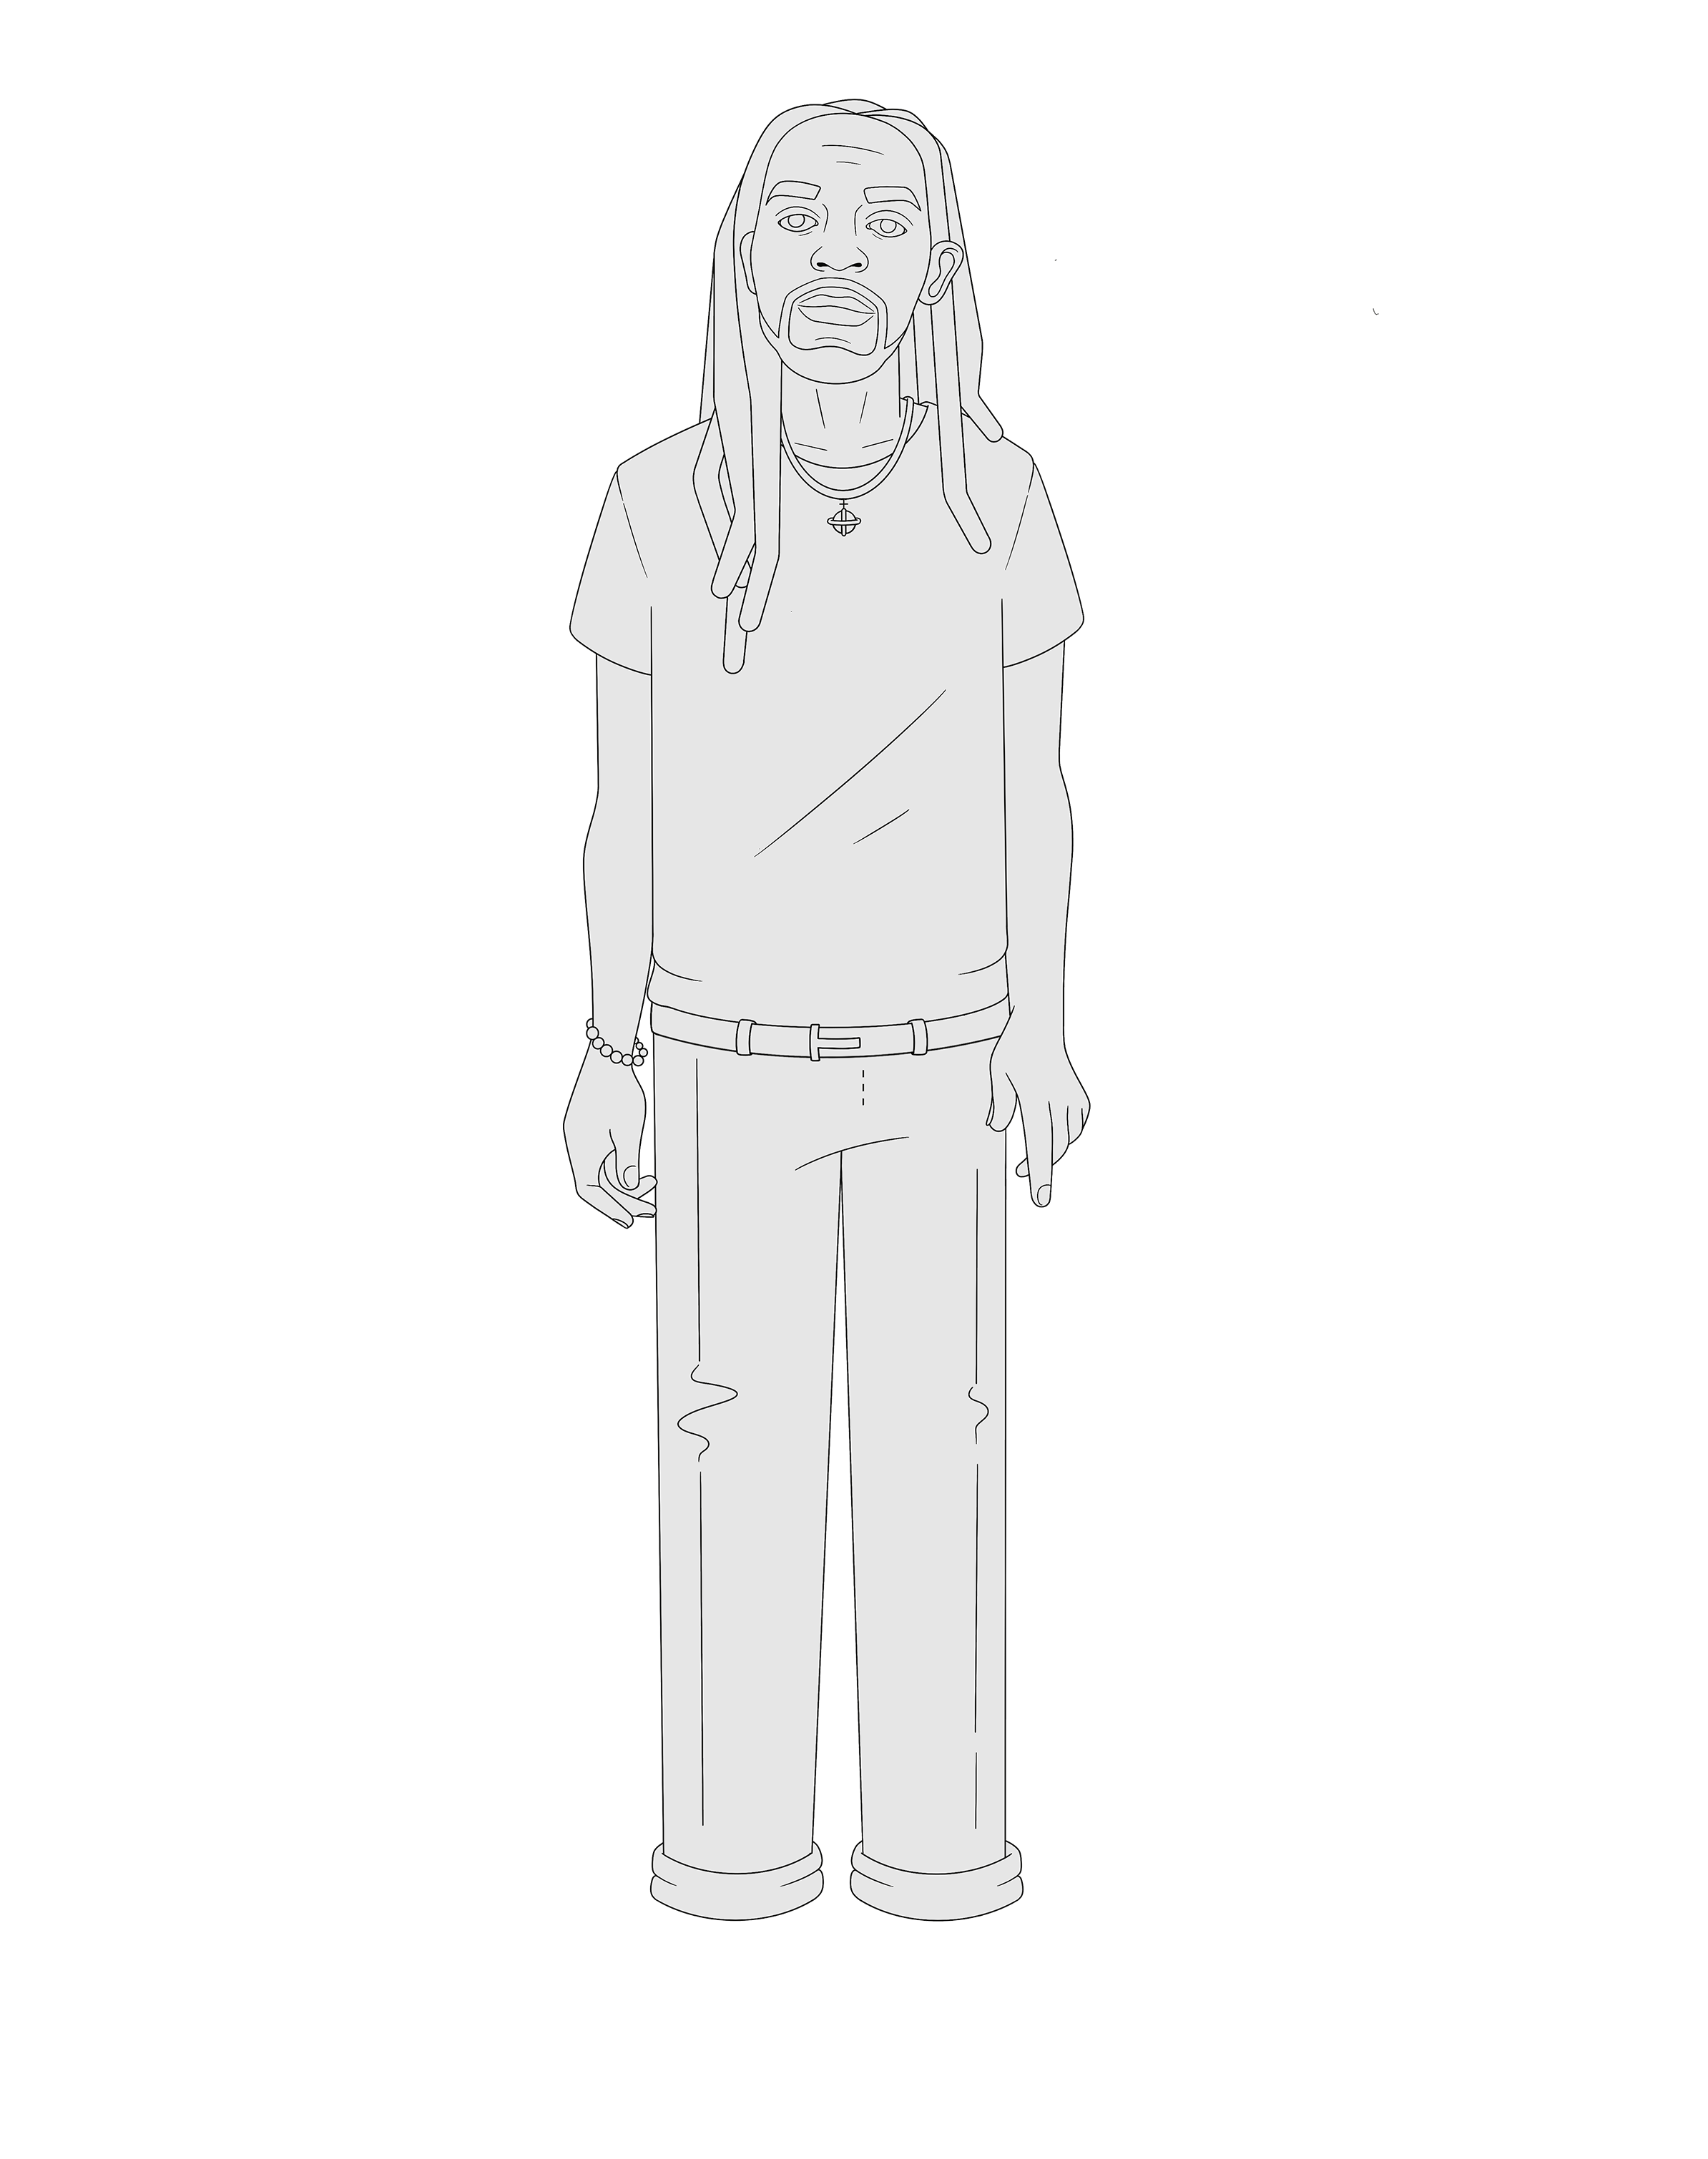 Erick The Architect full body illustration